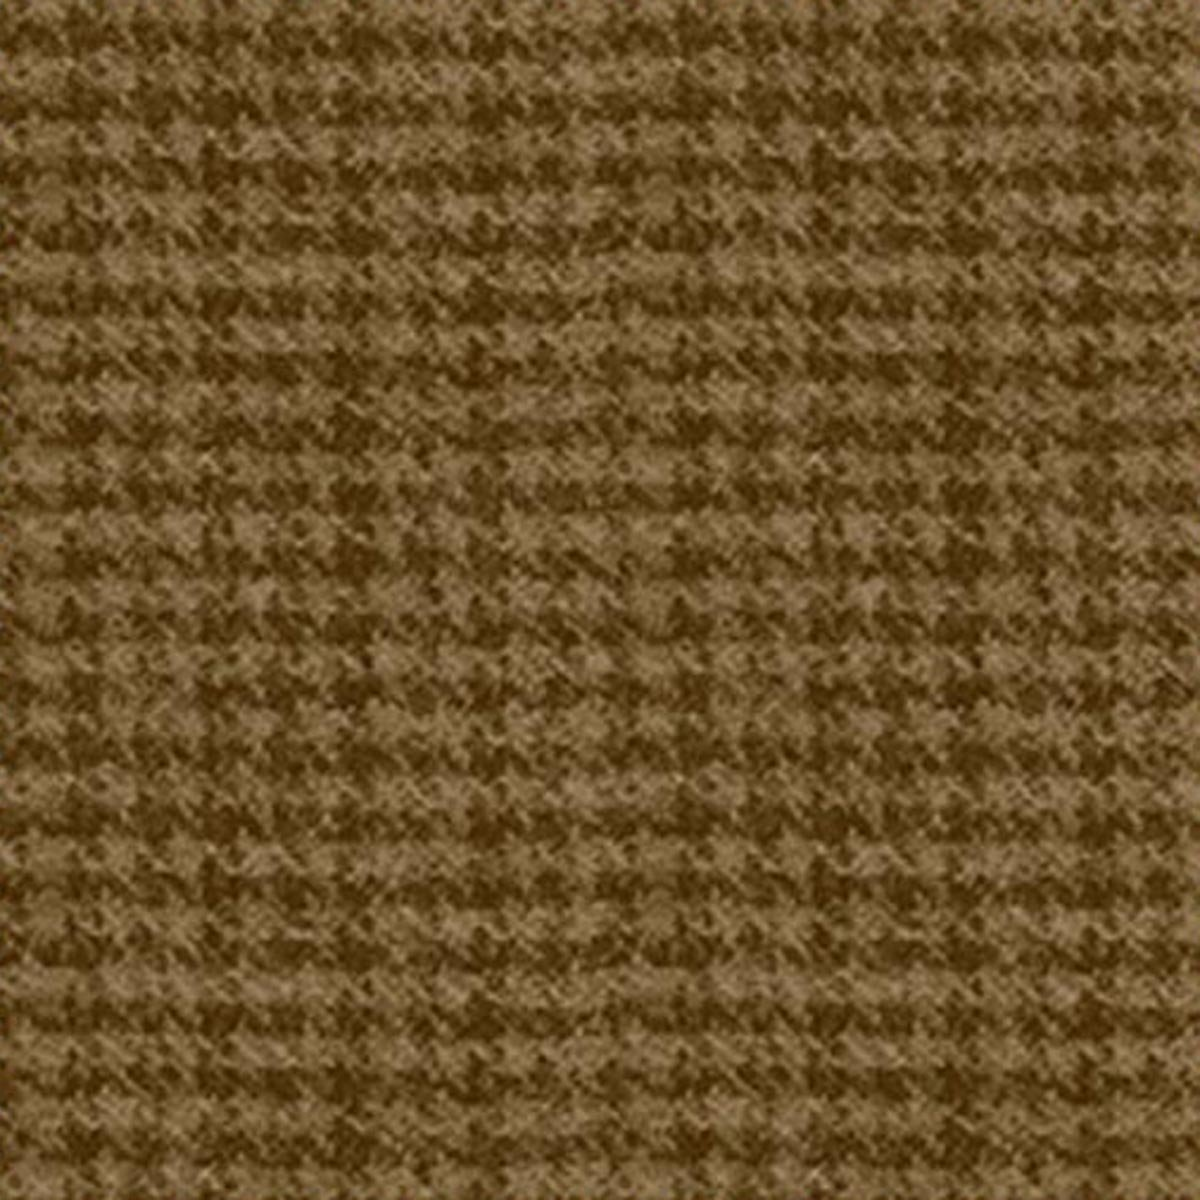 Woolies Flannel - MASF18503-A2